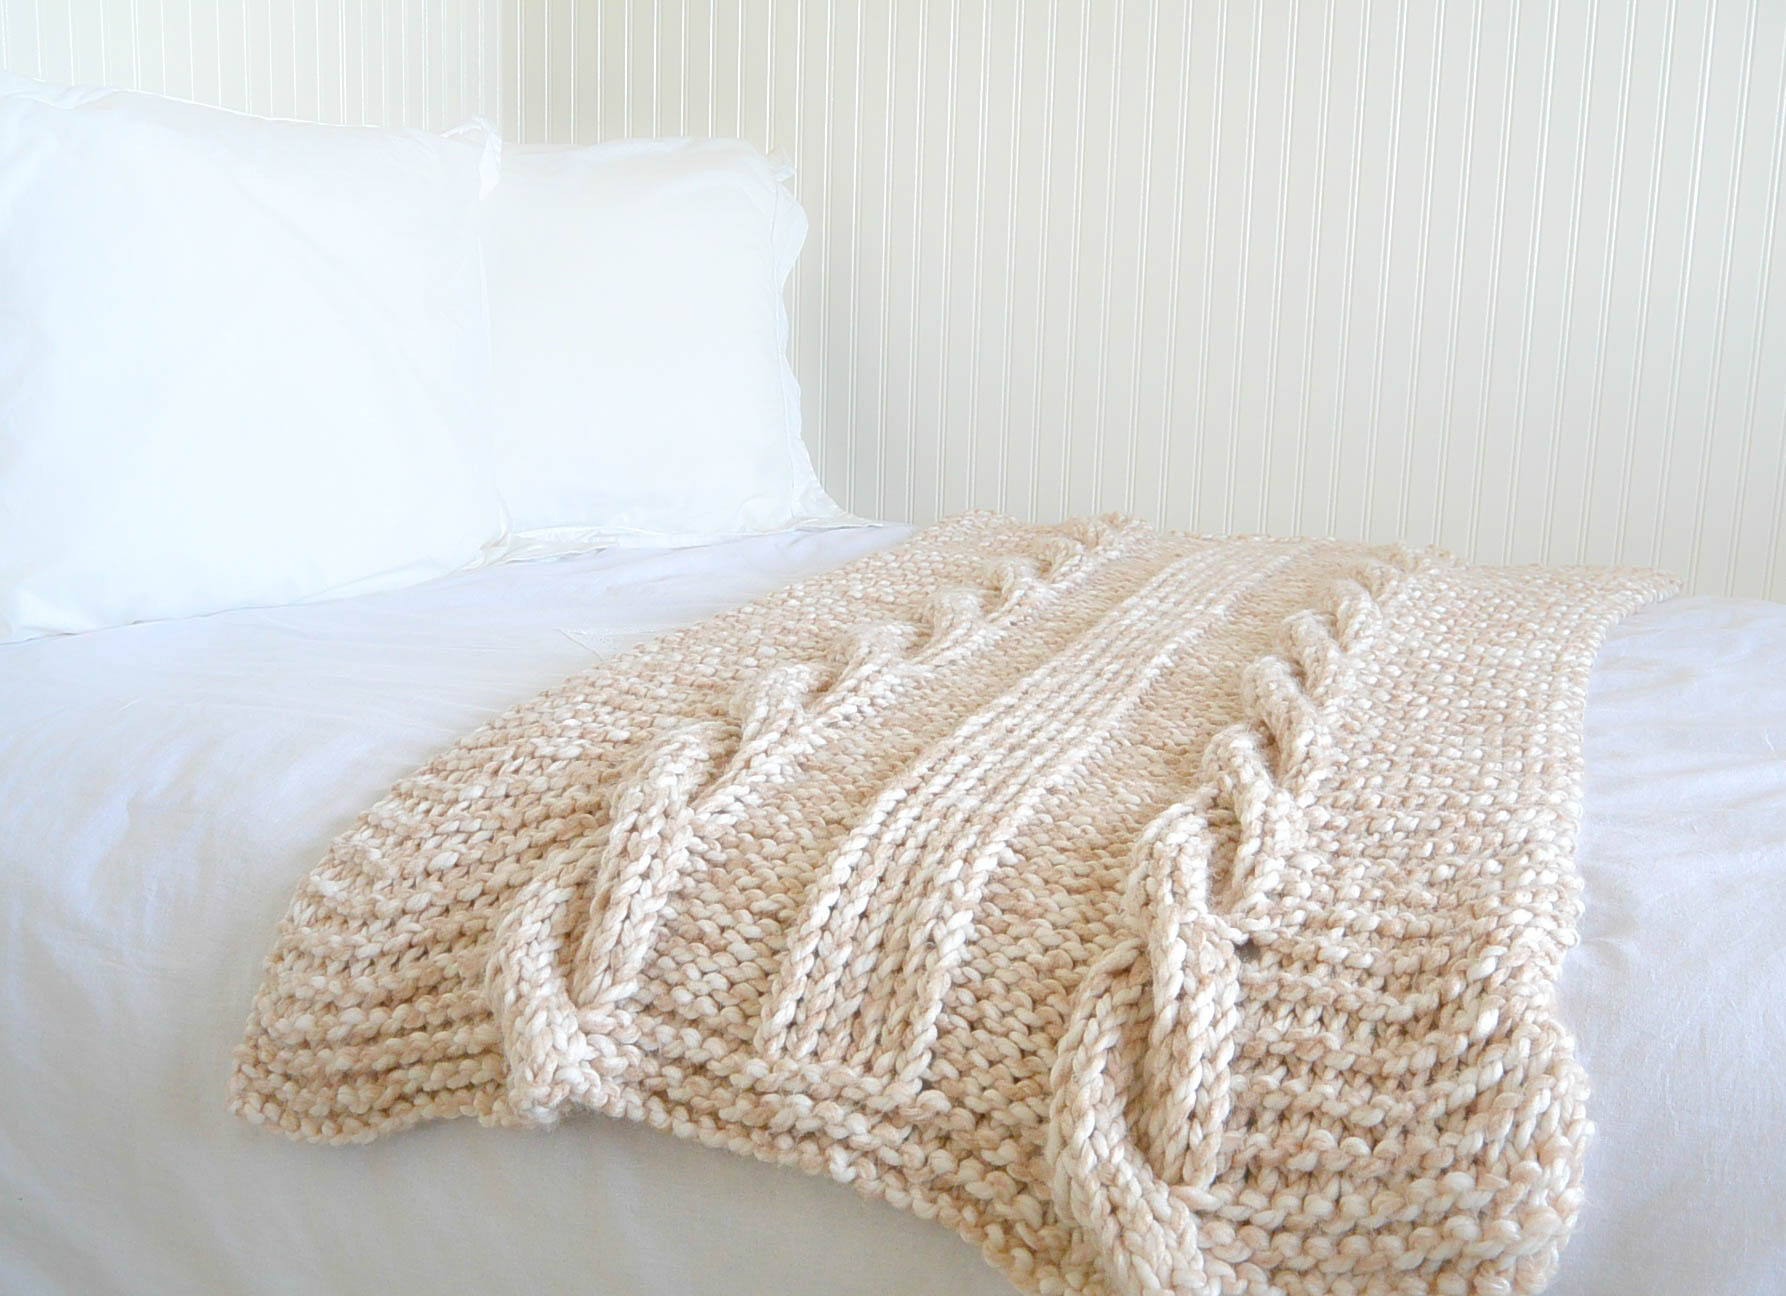 Knitting Patterns For Throws : Endless Cables Chunky Knit Throw Pattern   Mama In A Stitch